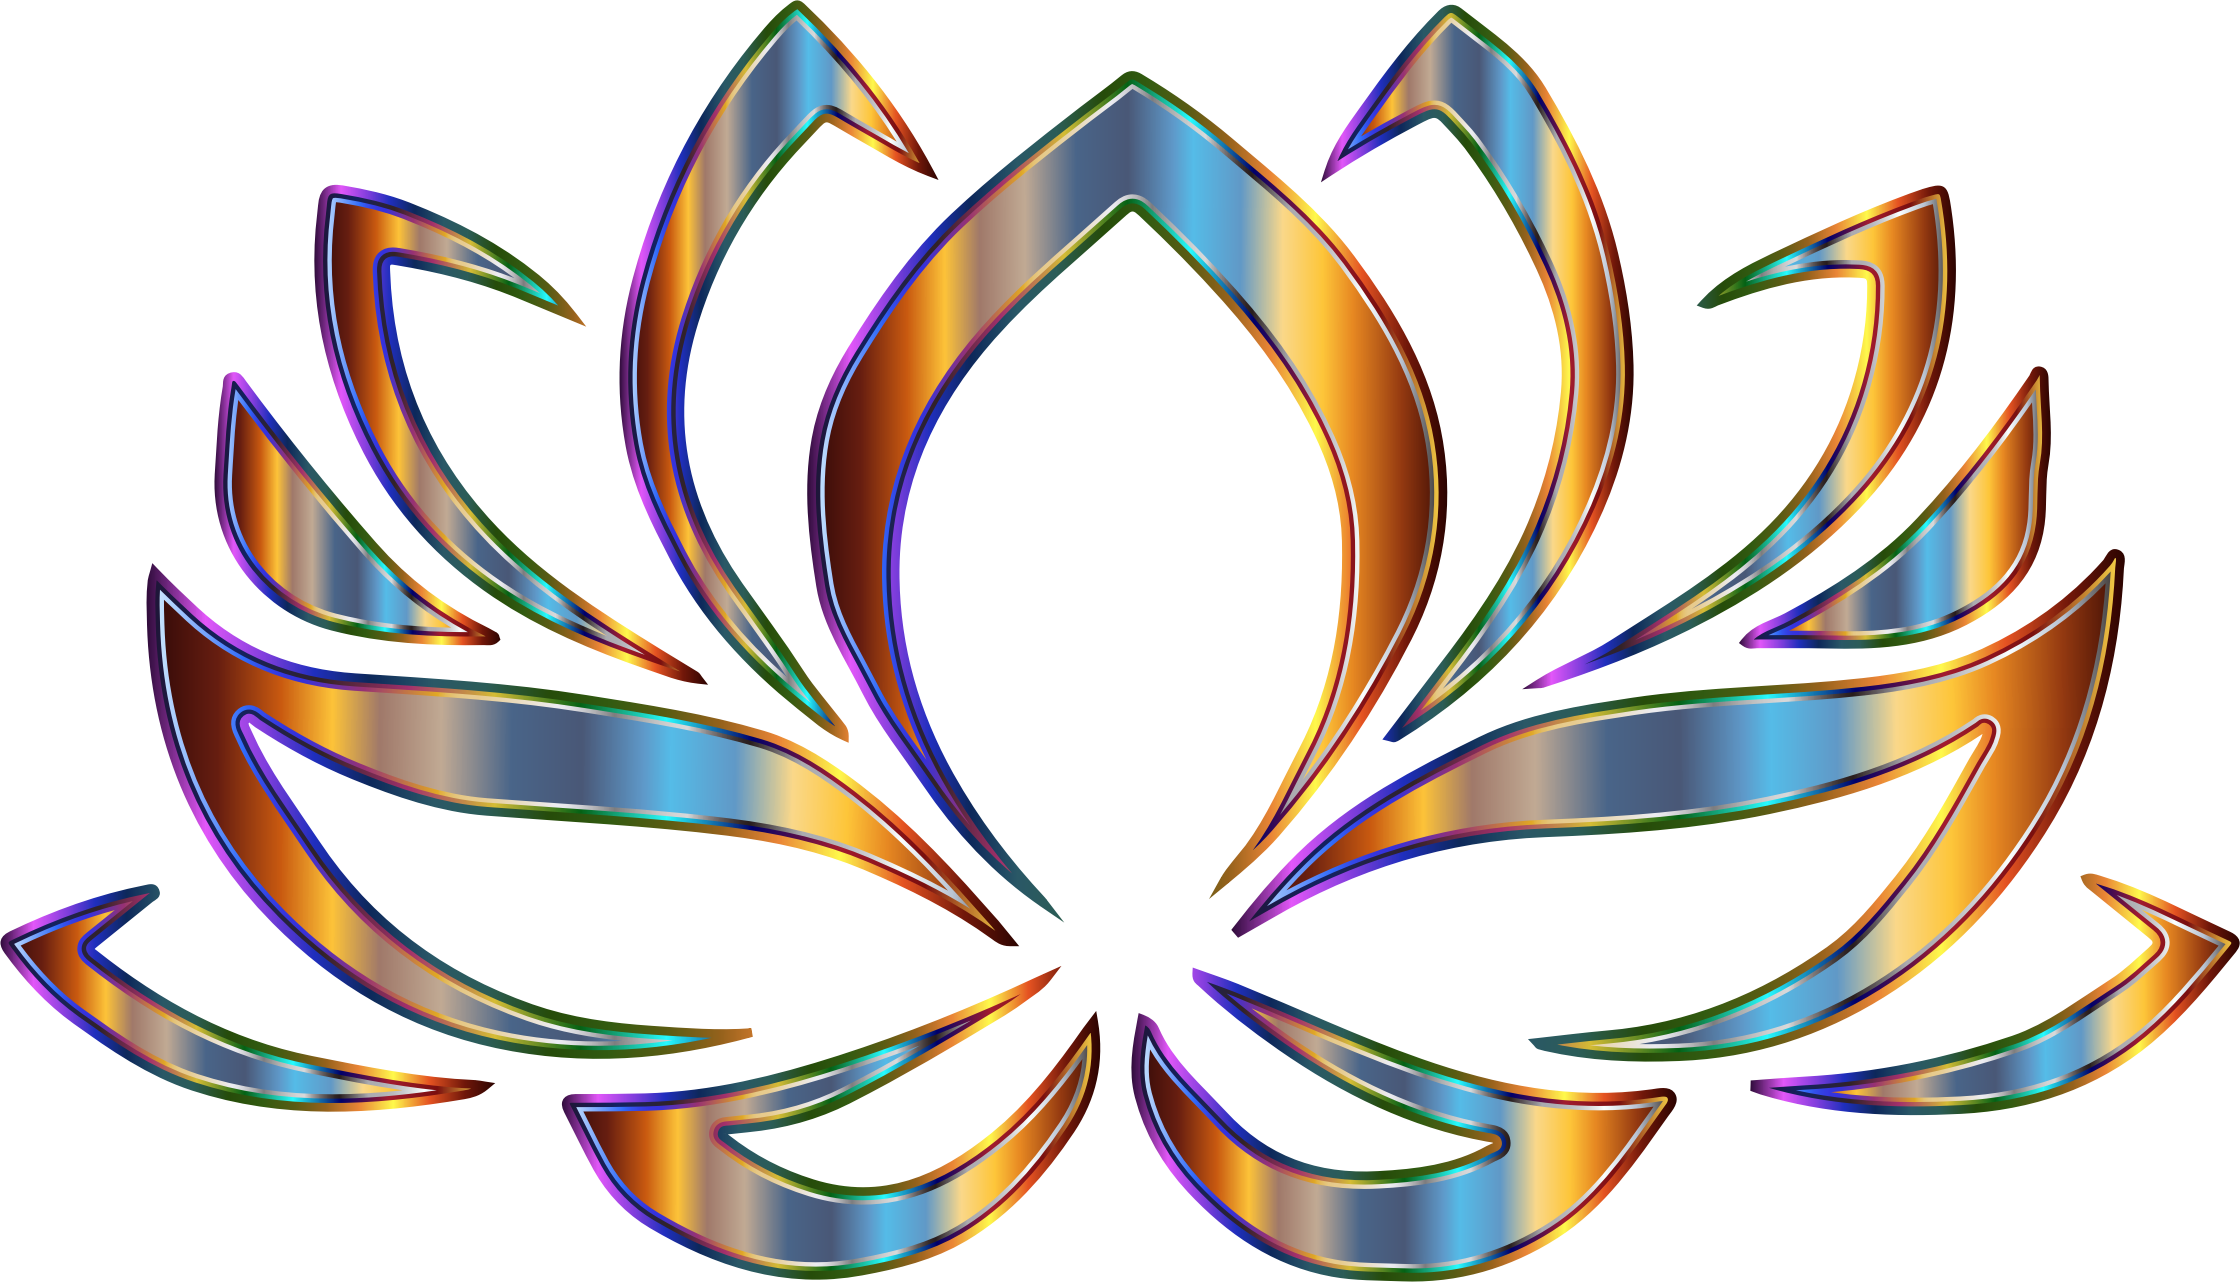 Lotus Flower Clipart at GetDrawings.com.